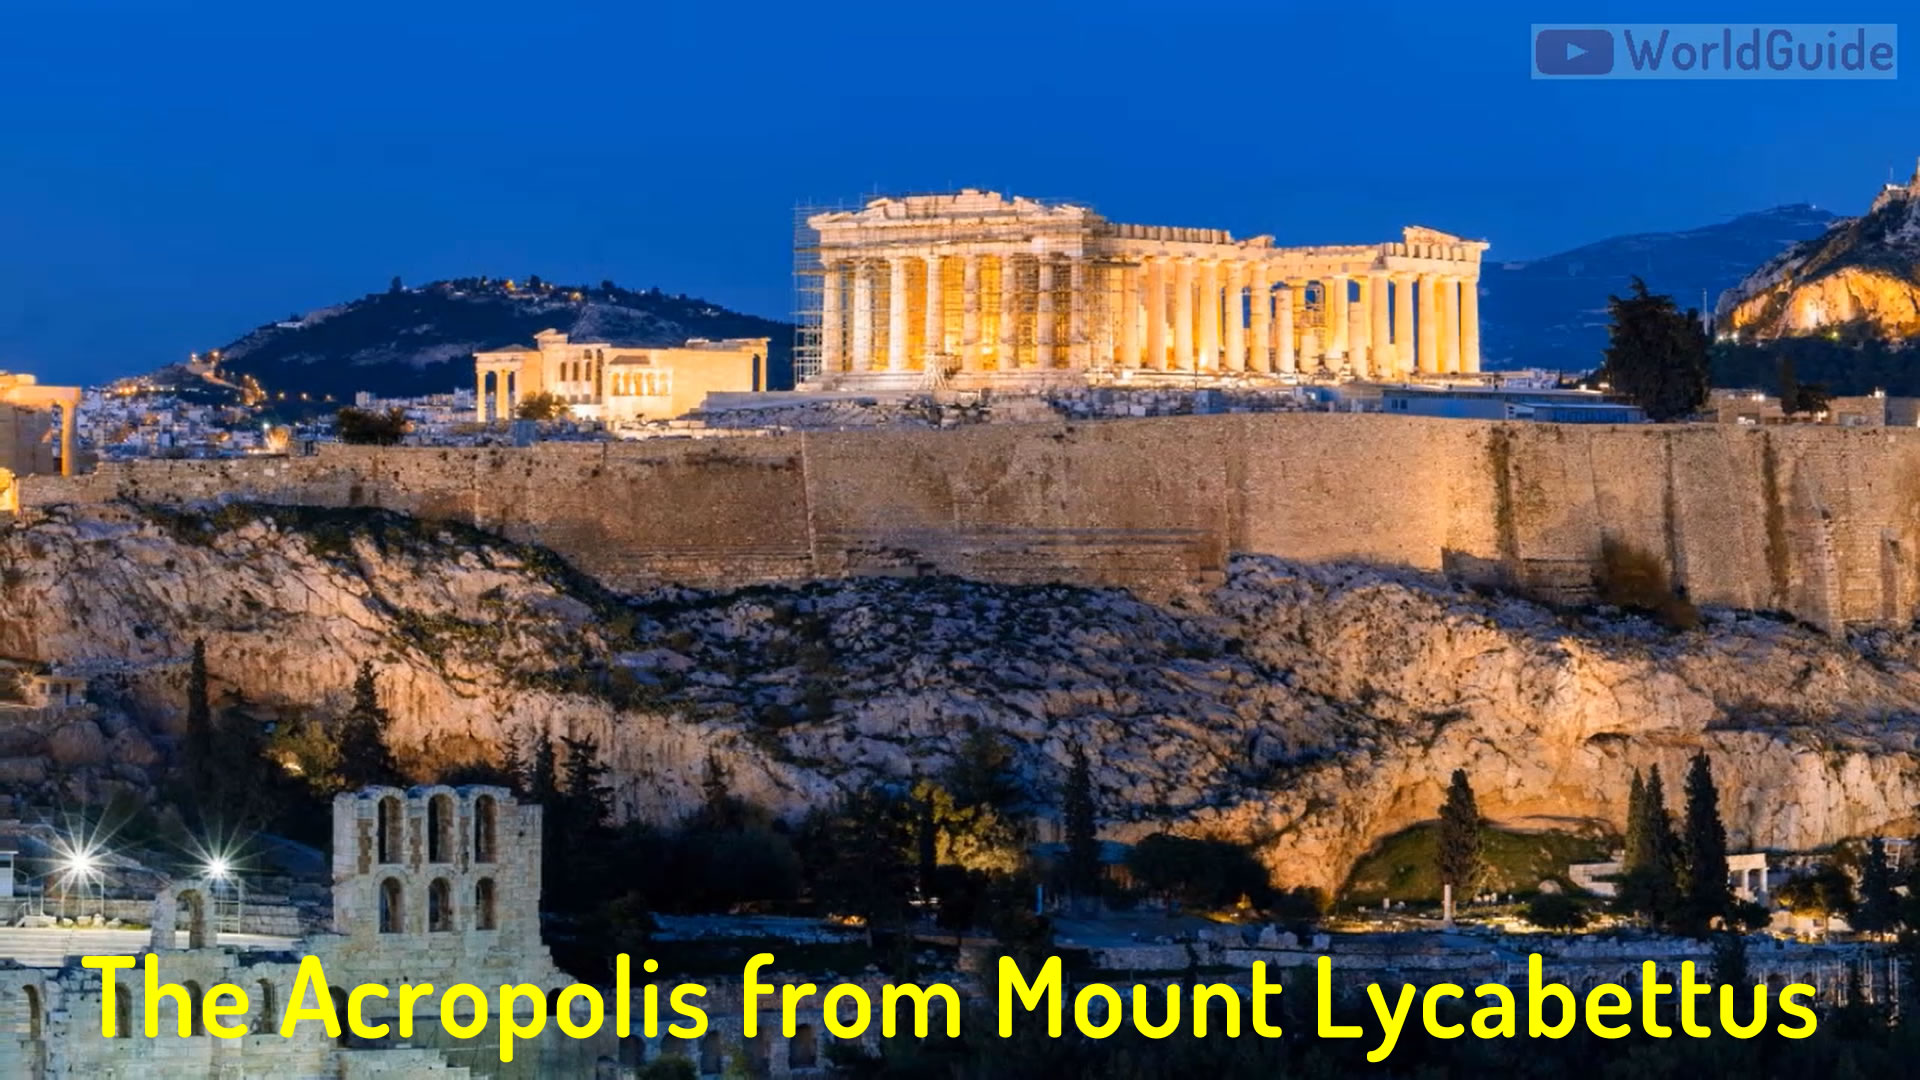 The Acropolis of Athens as seen from Mount Lycabettus